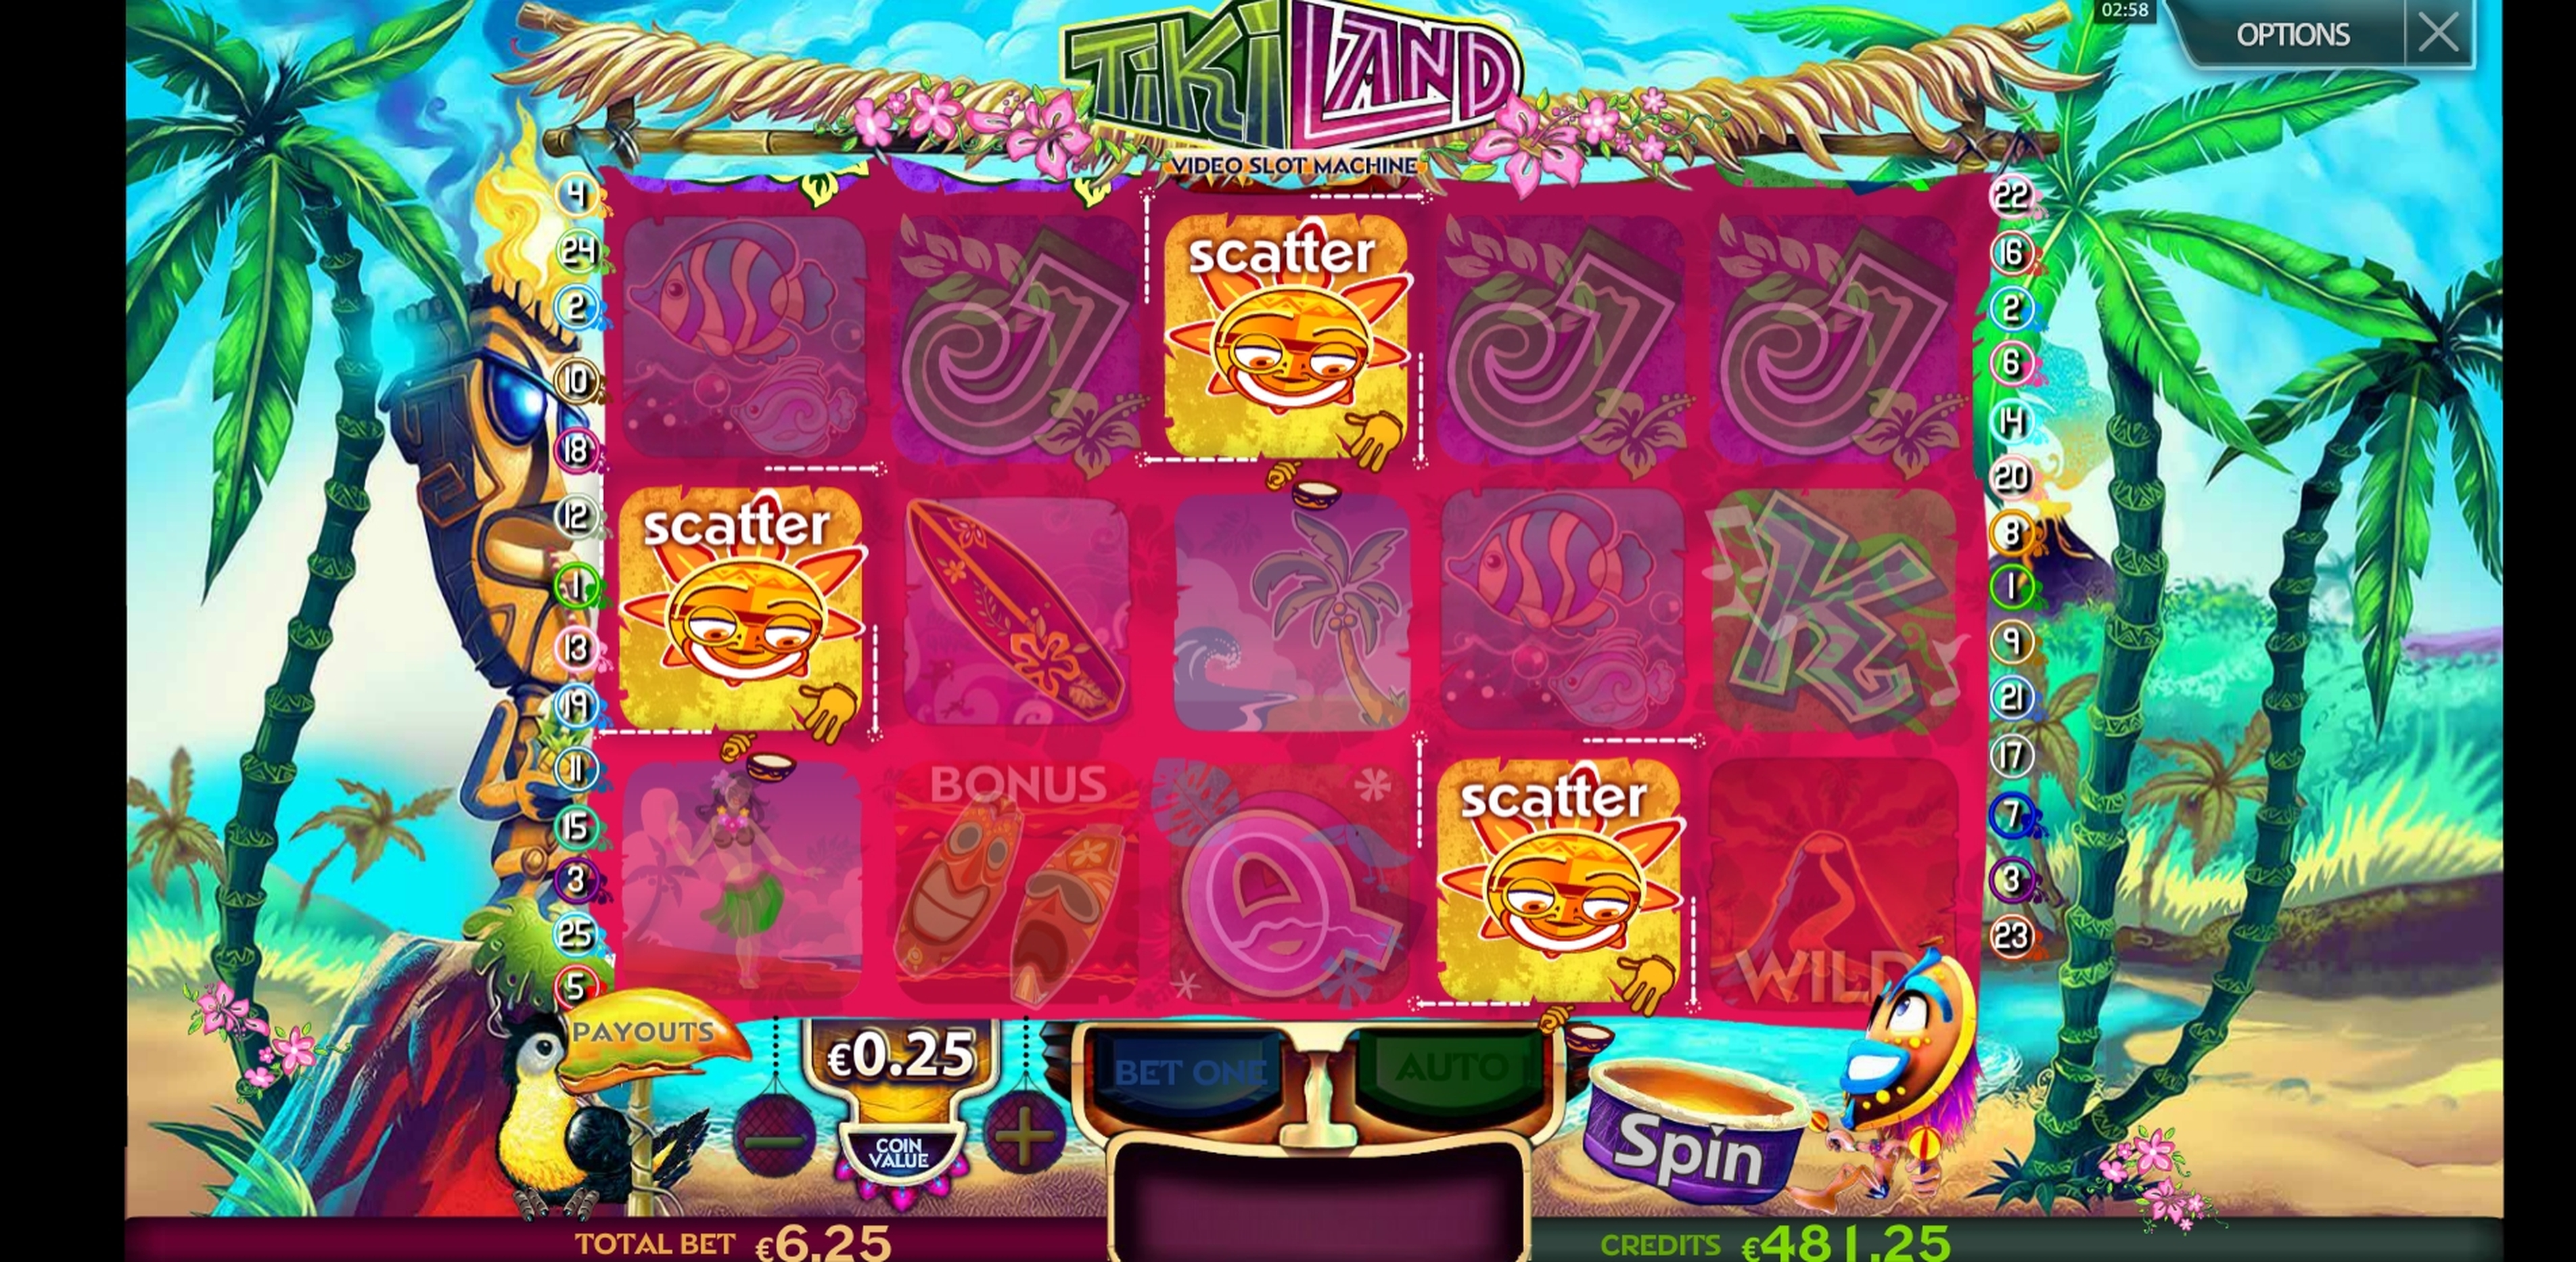 Win Money in Tiki Land Free Slot Game by Multislot